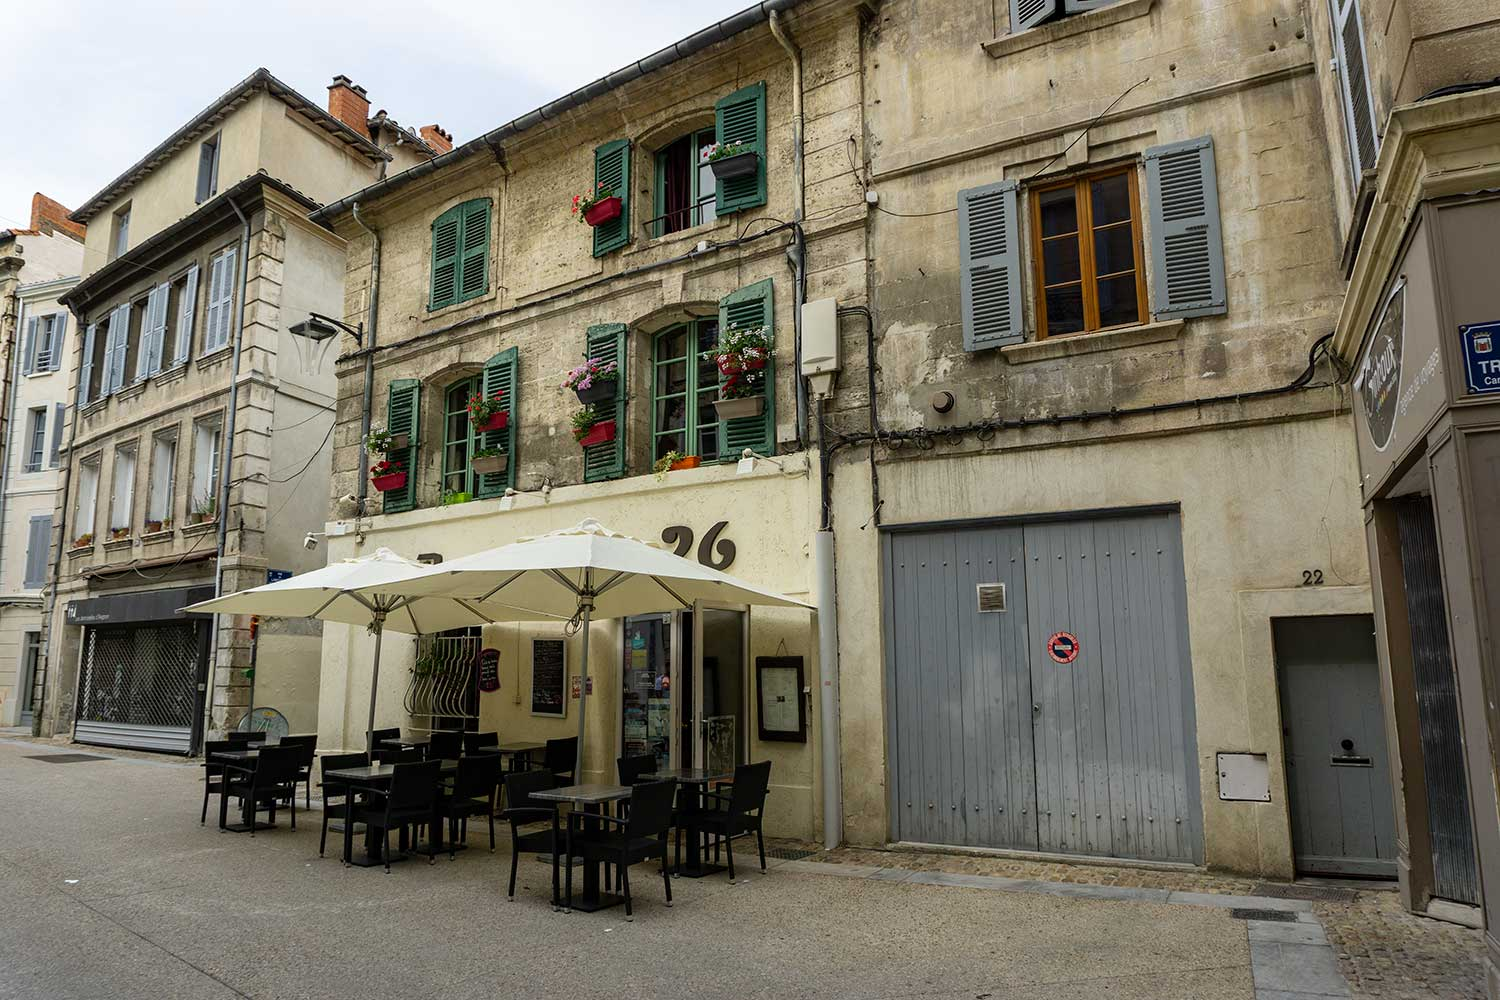 A street and cafe in Avignon, France.